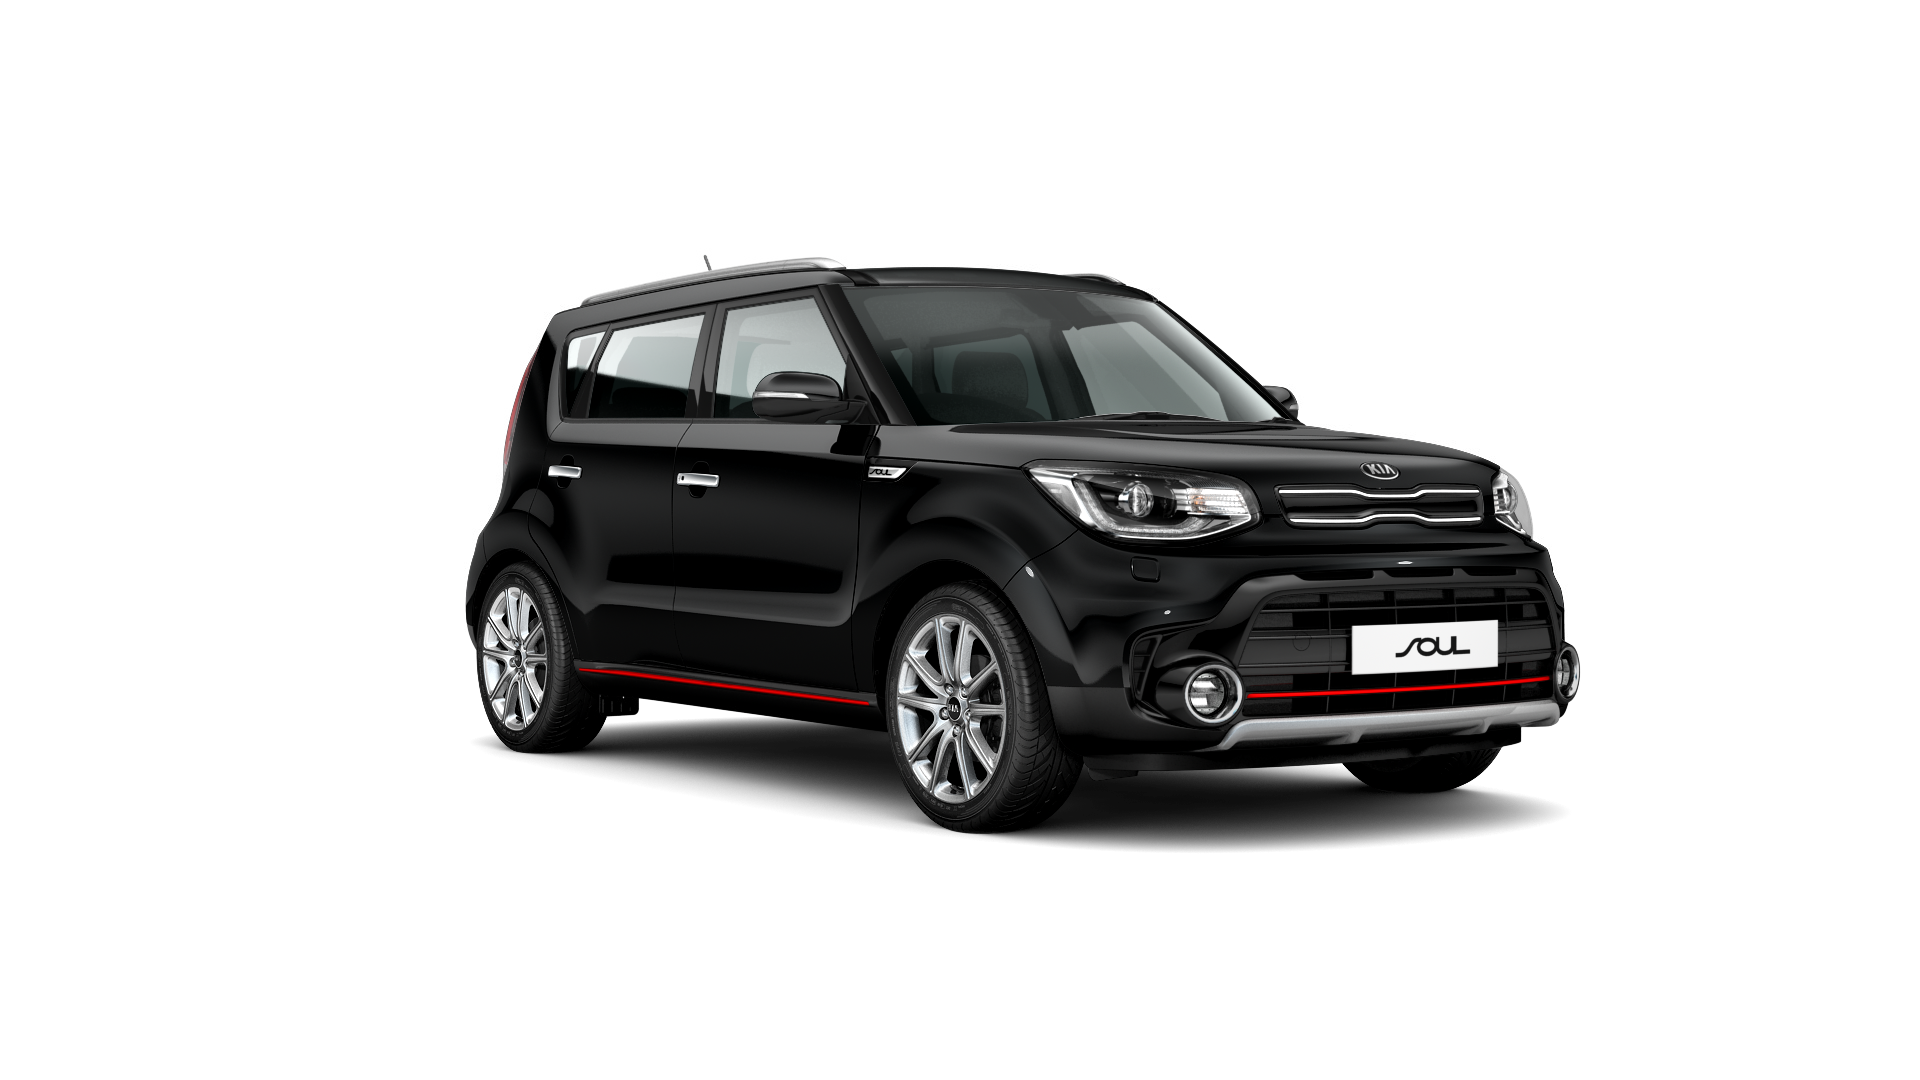 soul in quartz-black - Kia Soul PNG